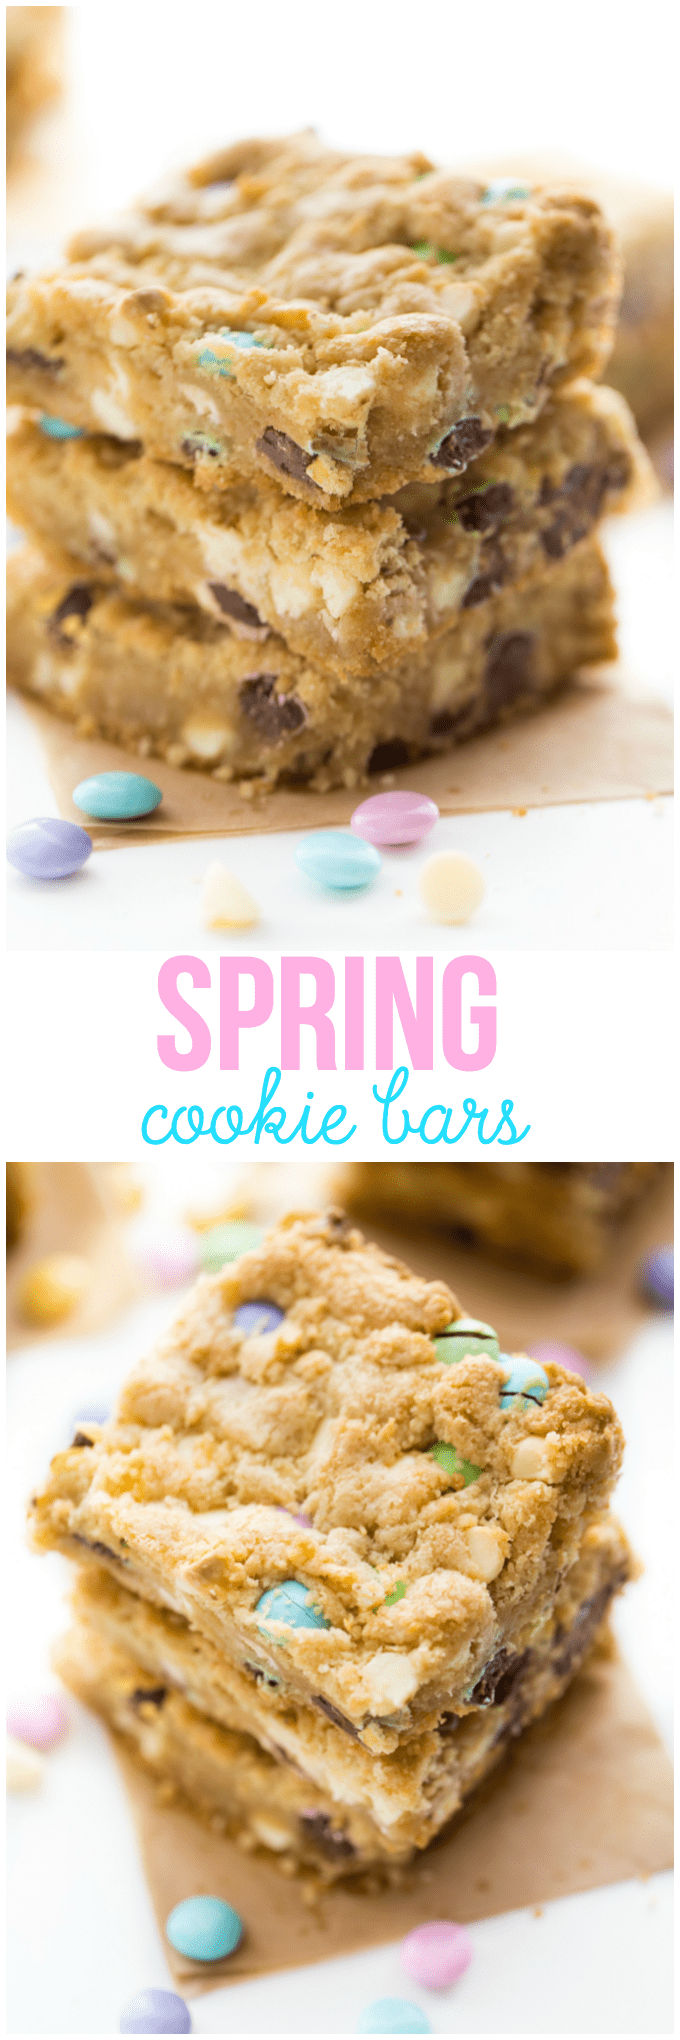 Spring Cookie Bars - Sweet, chewy cookie bars baked to golden brown perfection! They are packed with yummy white chocolate chips and M&M's in pretty pastels.